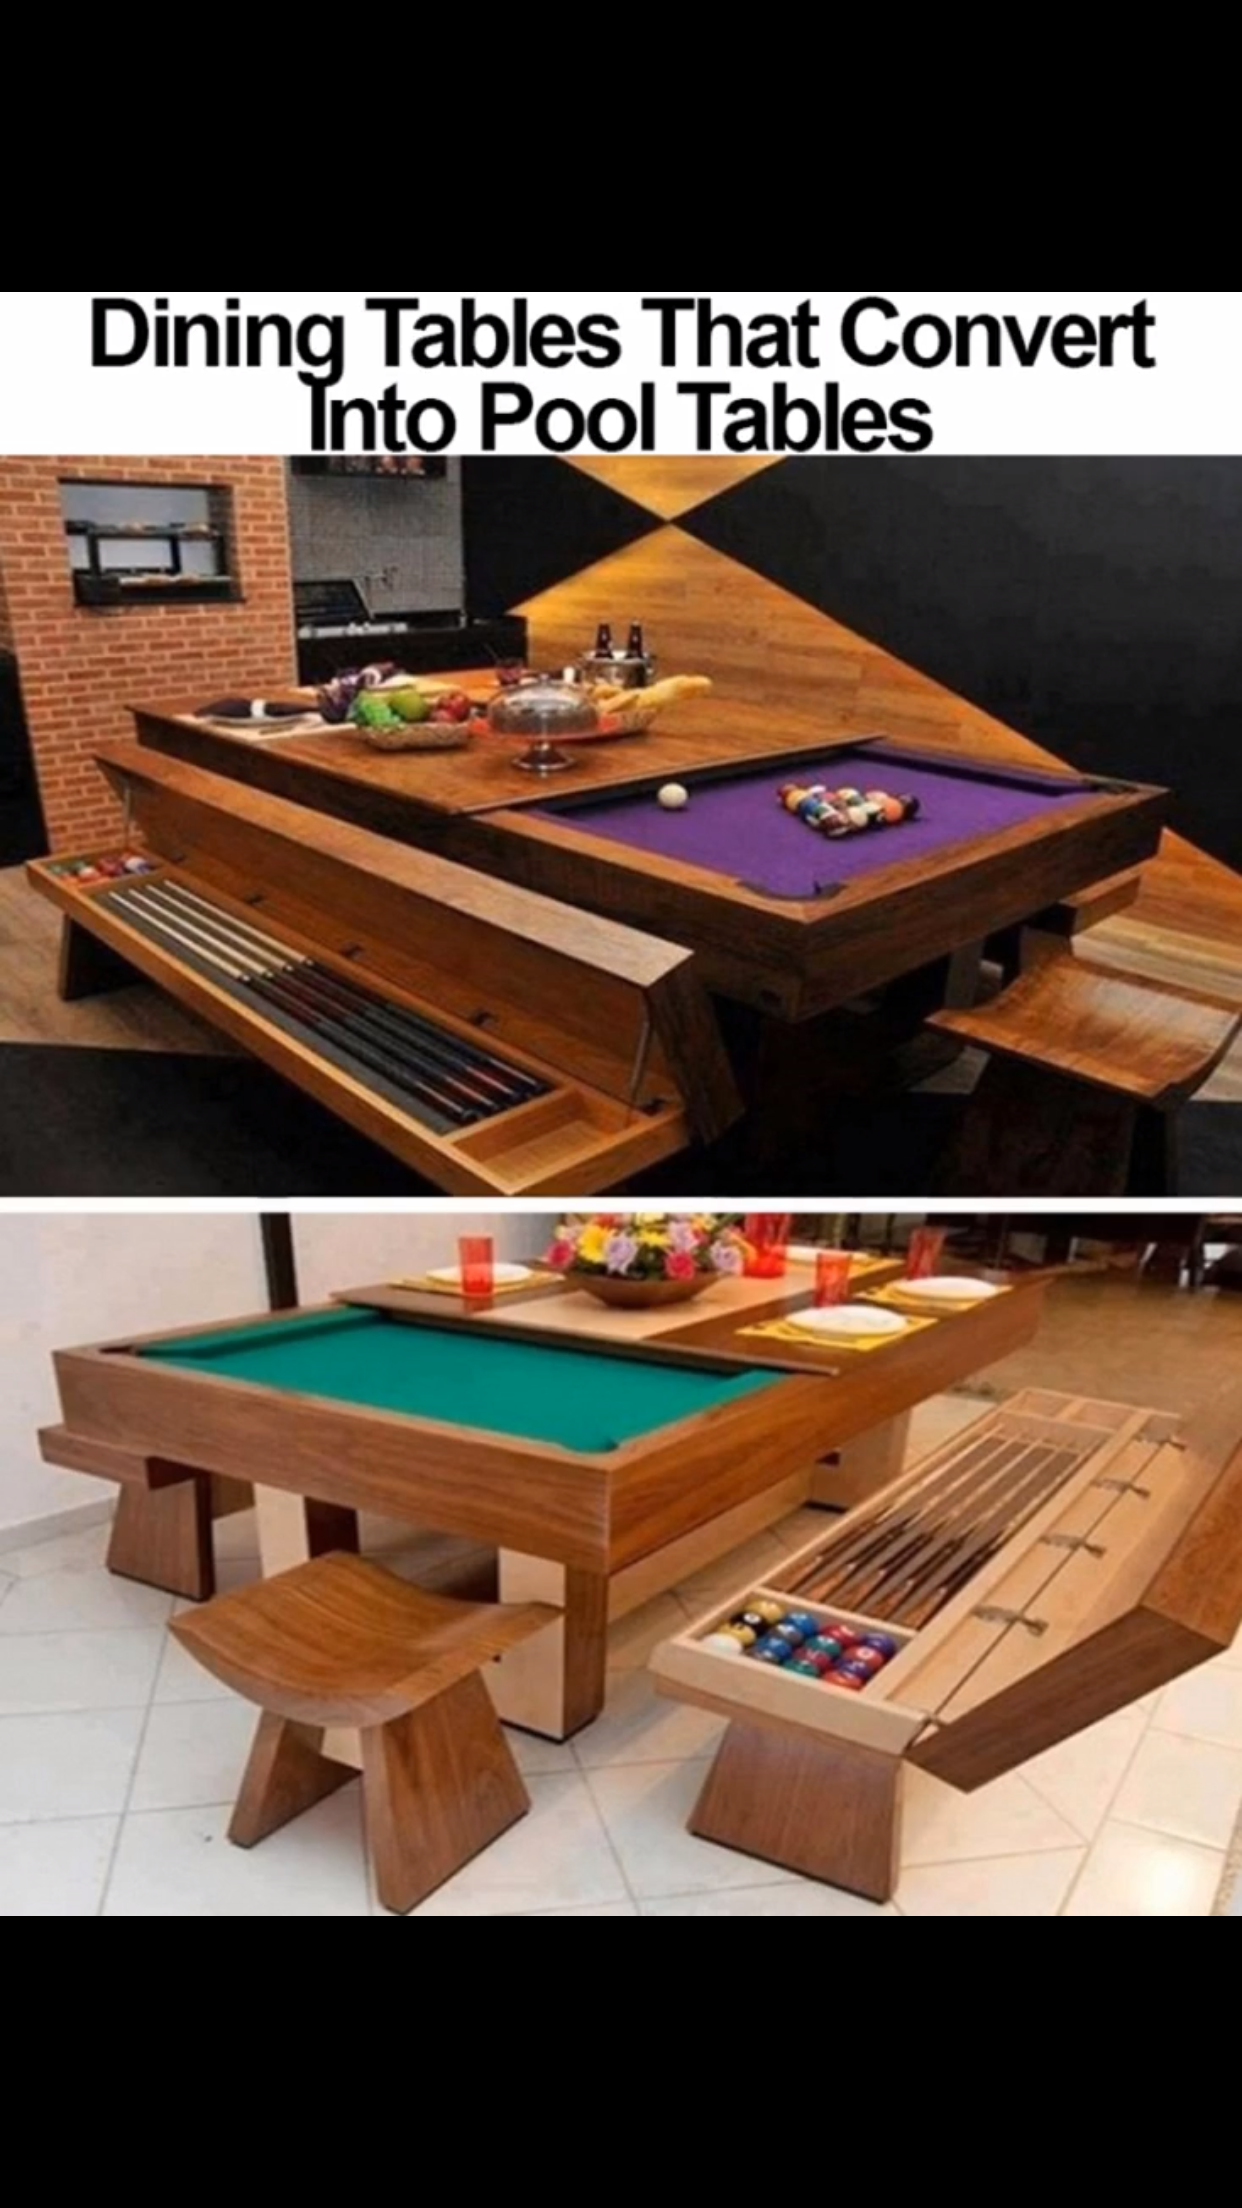 Pool Table, Decorating Ideas, Wood Working, Modeling, Bumper Pool Table,  Woodworking, Billard Table, Woodworking Tools, Centerpiece Ideas